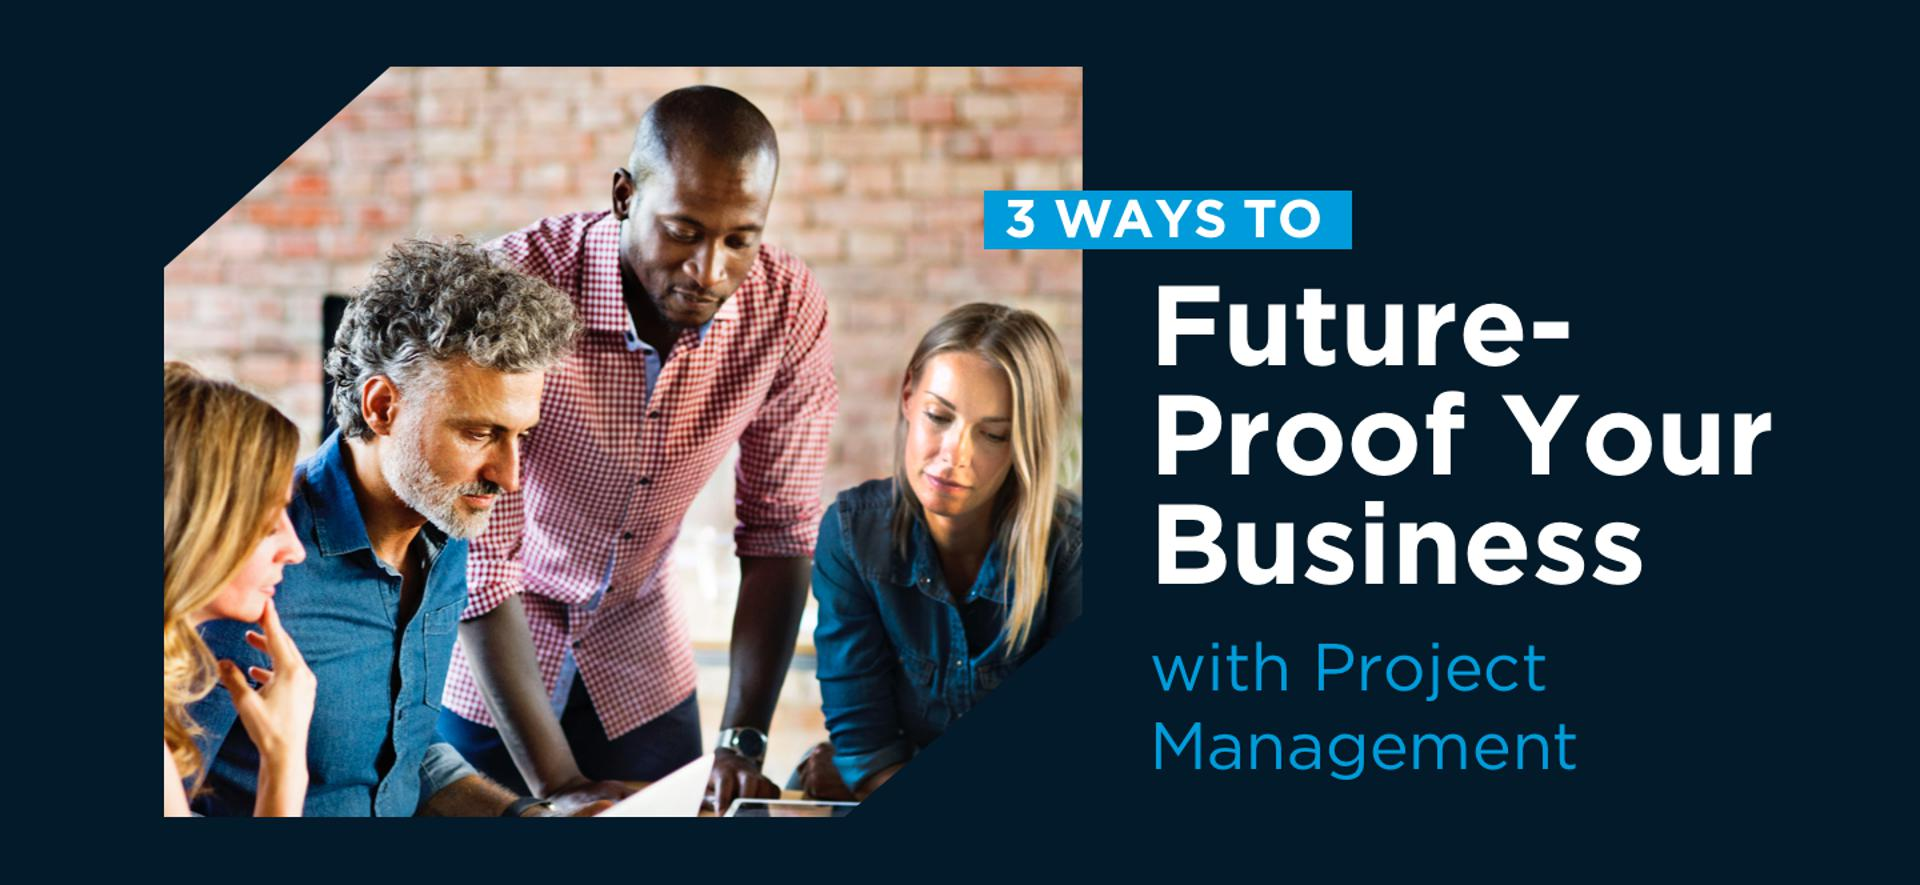 3 Ways To Future-Proof Your Business With Project Management